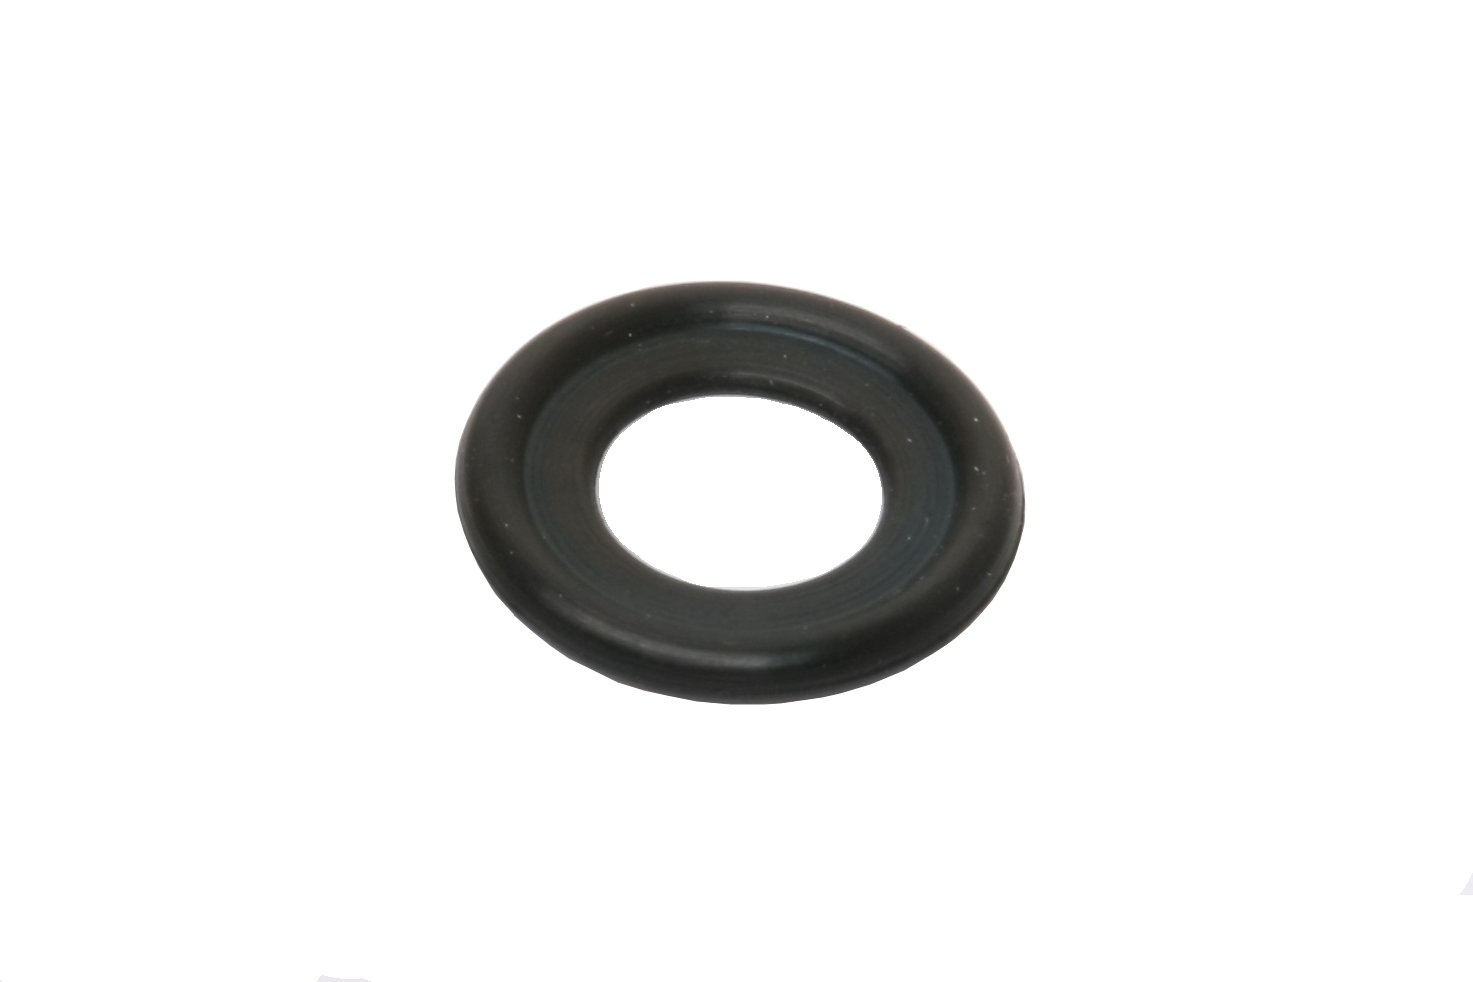 Uro Parts 3536966 Oil Drain Plug Gasket 35 36 966